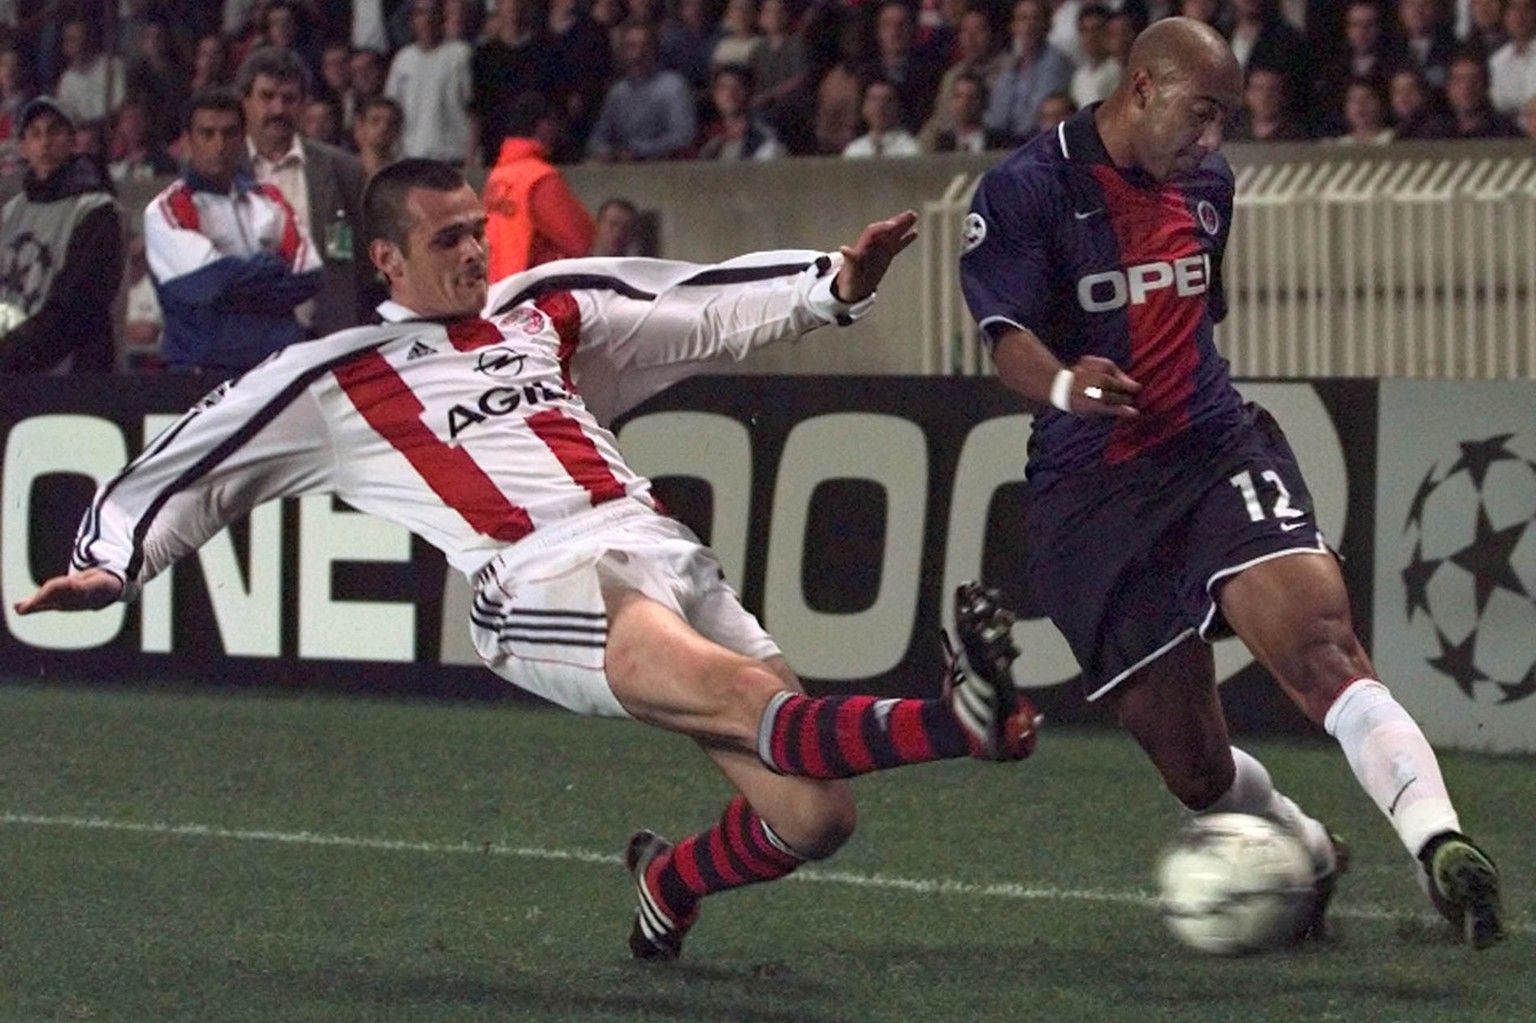 Paris SG player Stephane Dalmat, right, is tackled by an unidentified Bayern player during their Champions League, Group F, soccer match between Paris Saint Germain and Bayern Munich at the Parc des Princes in Paris, Tuesday Sept. 26, 2000.(AP PHOTO/Michel Lipchitz)